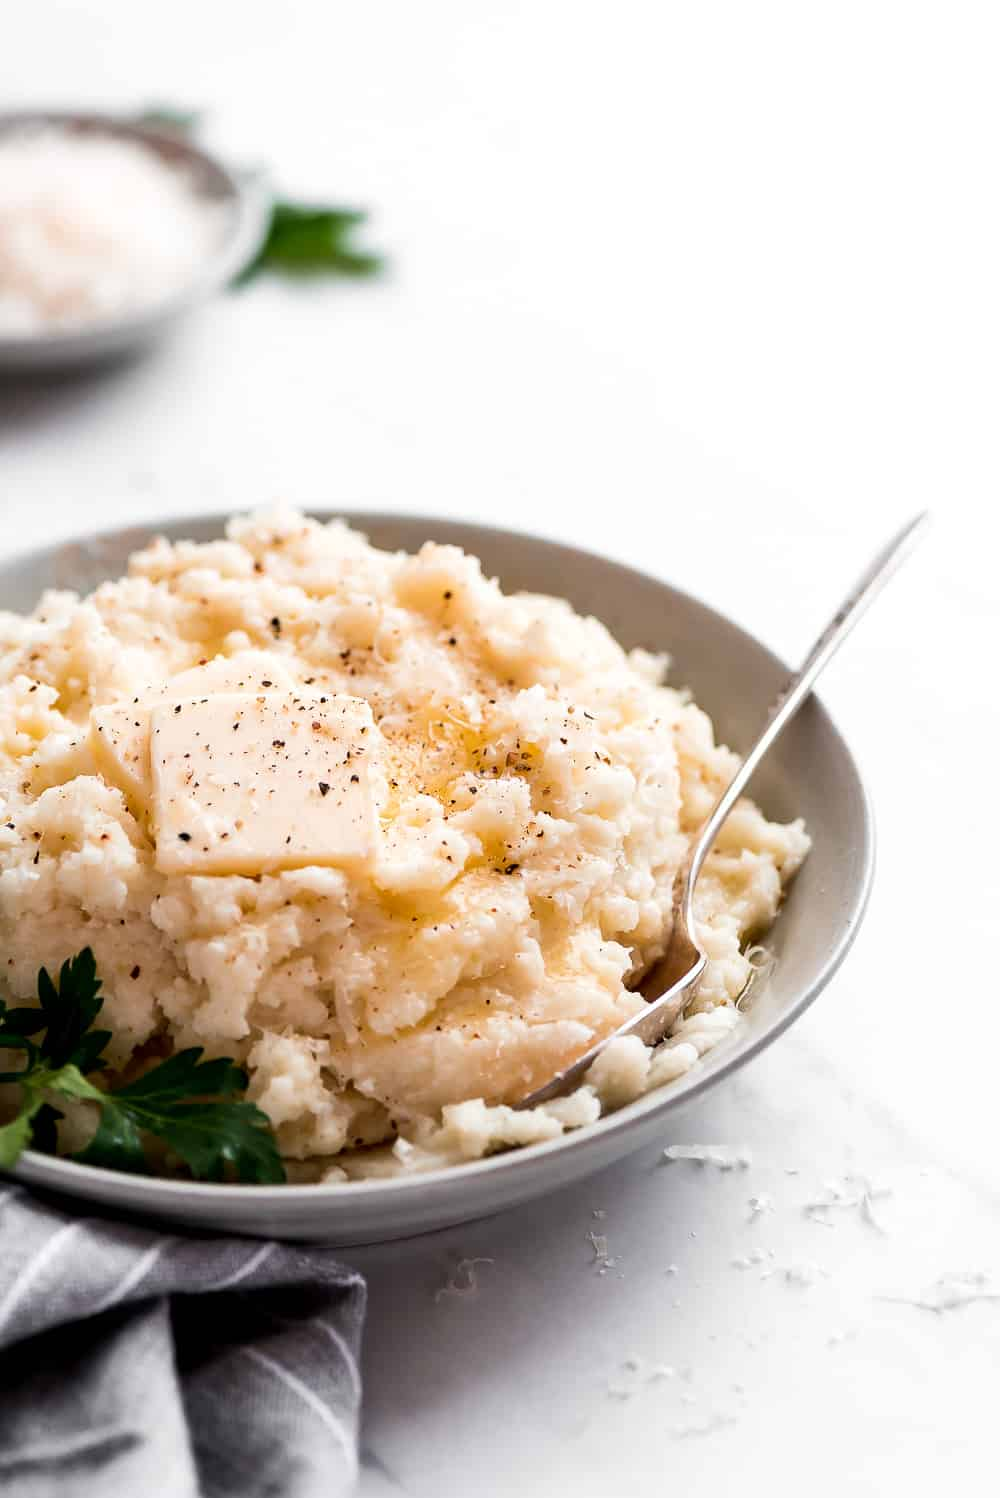 Mashed cauliflower in a bowl with butter on top